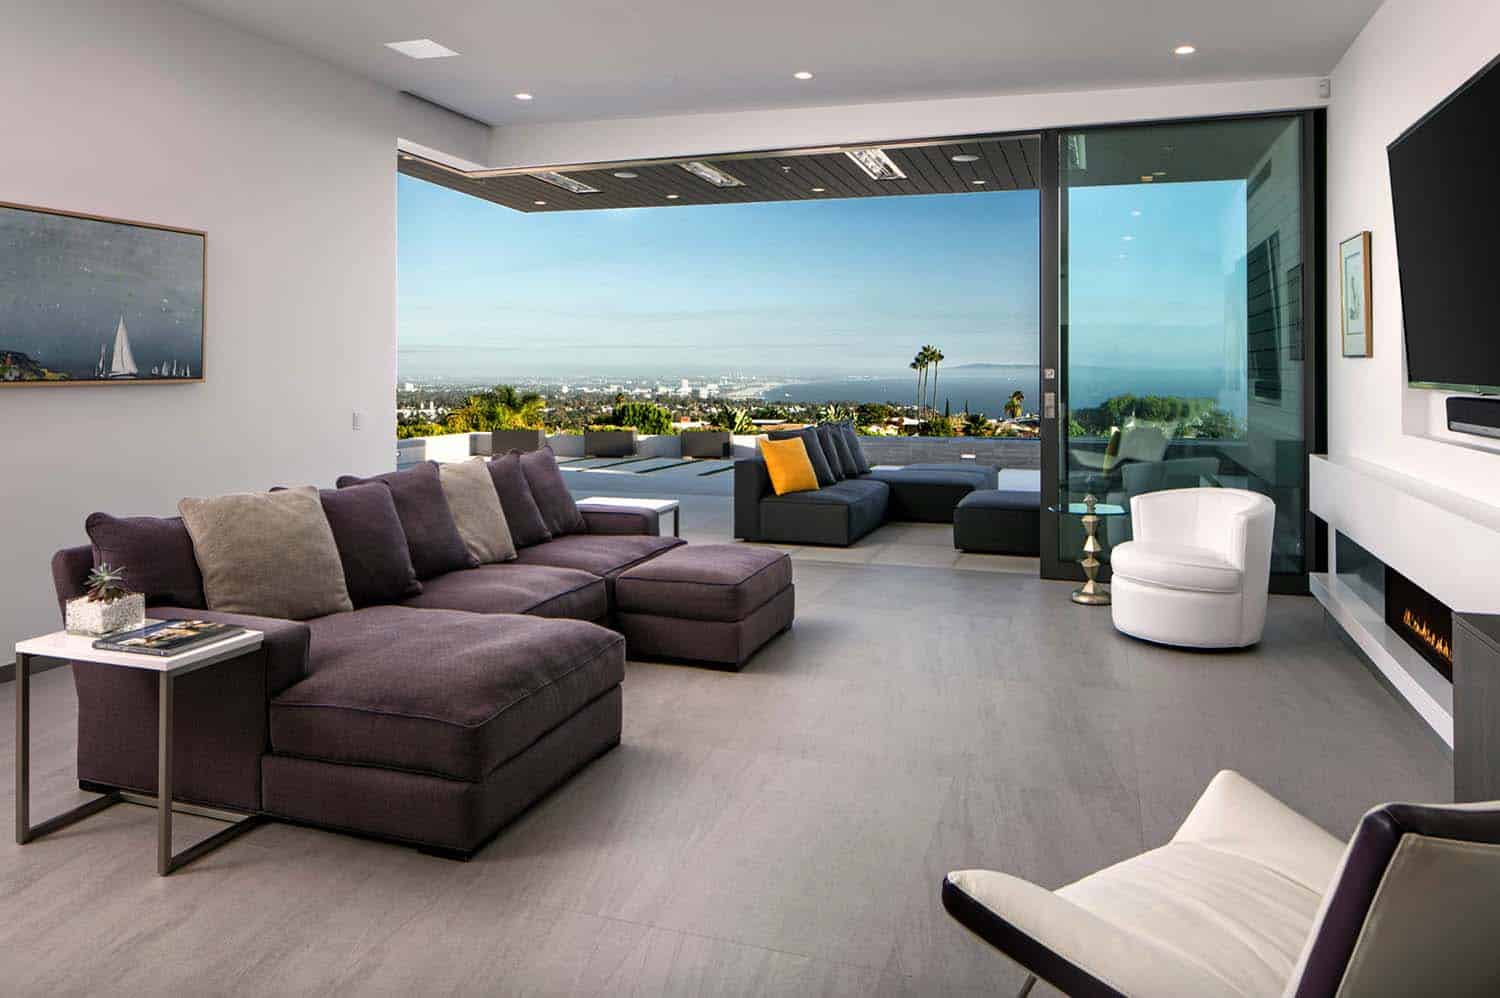 Striking Contemporary Home Abramson Teiger Architects 04 1 Kindesign. Striking contemporary home overlooking the Santa Monica Bay